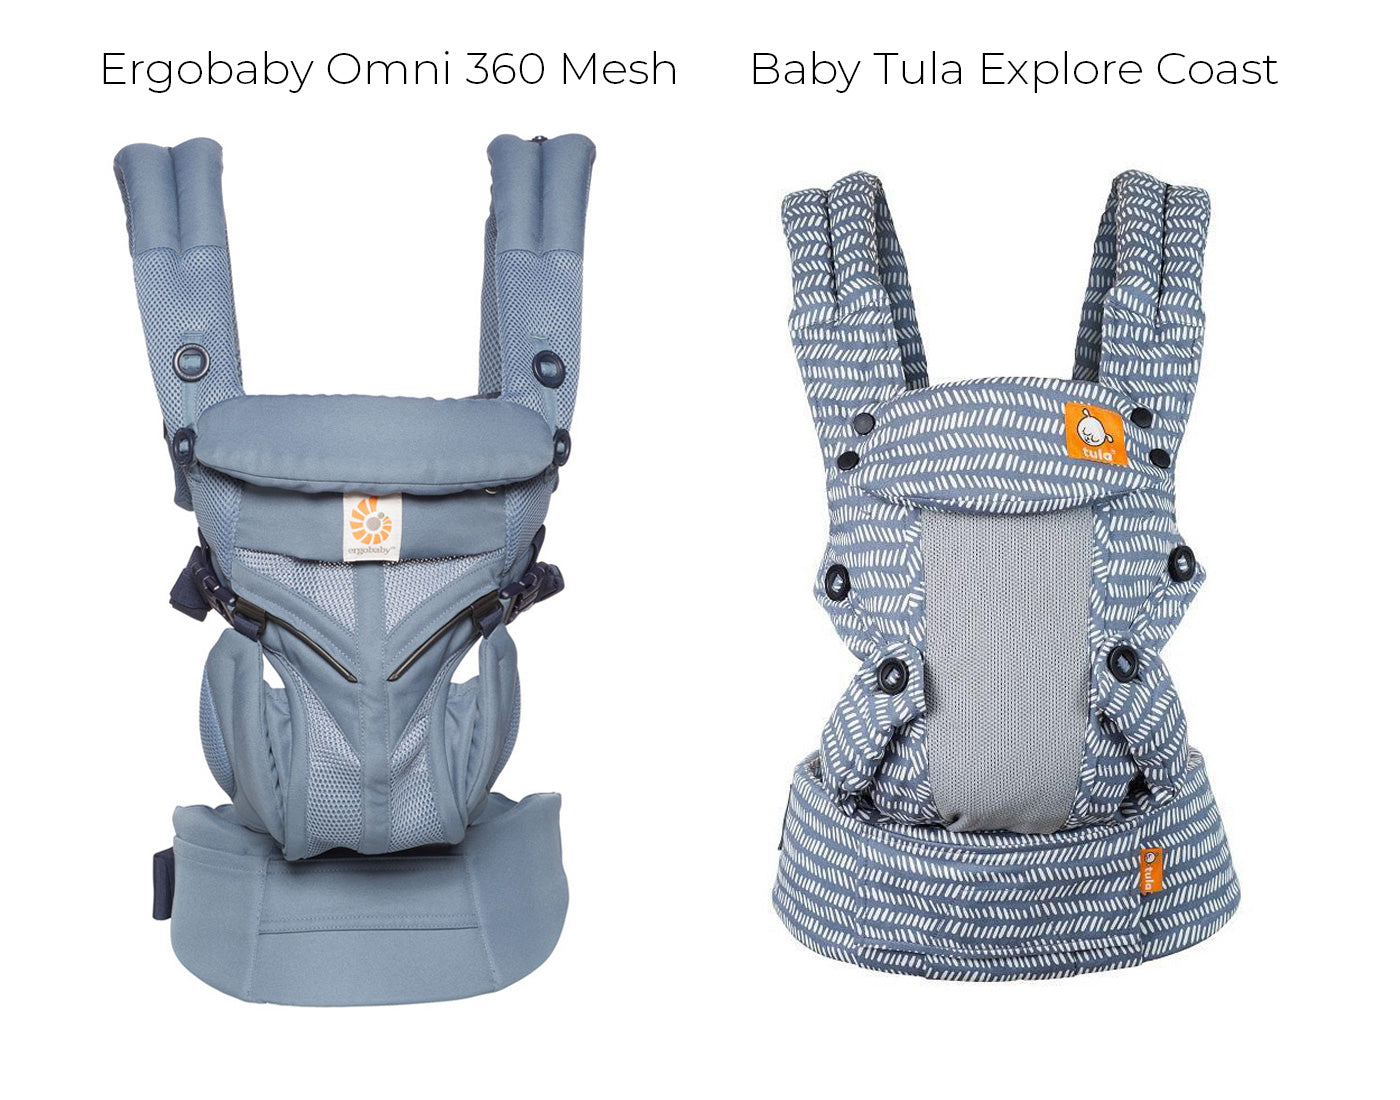 Ergobaby Omni 360 Mesh Baby Carrier compared with Baby Tula Explore Baby Carrier